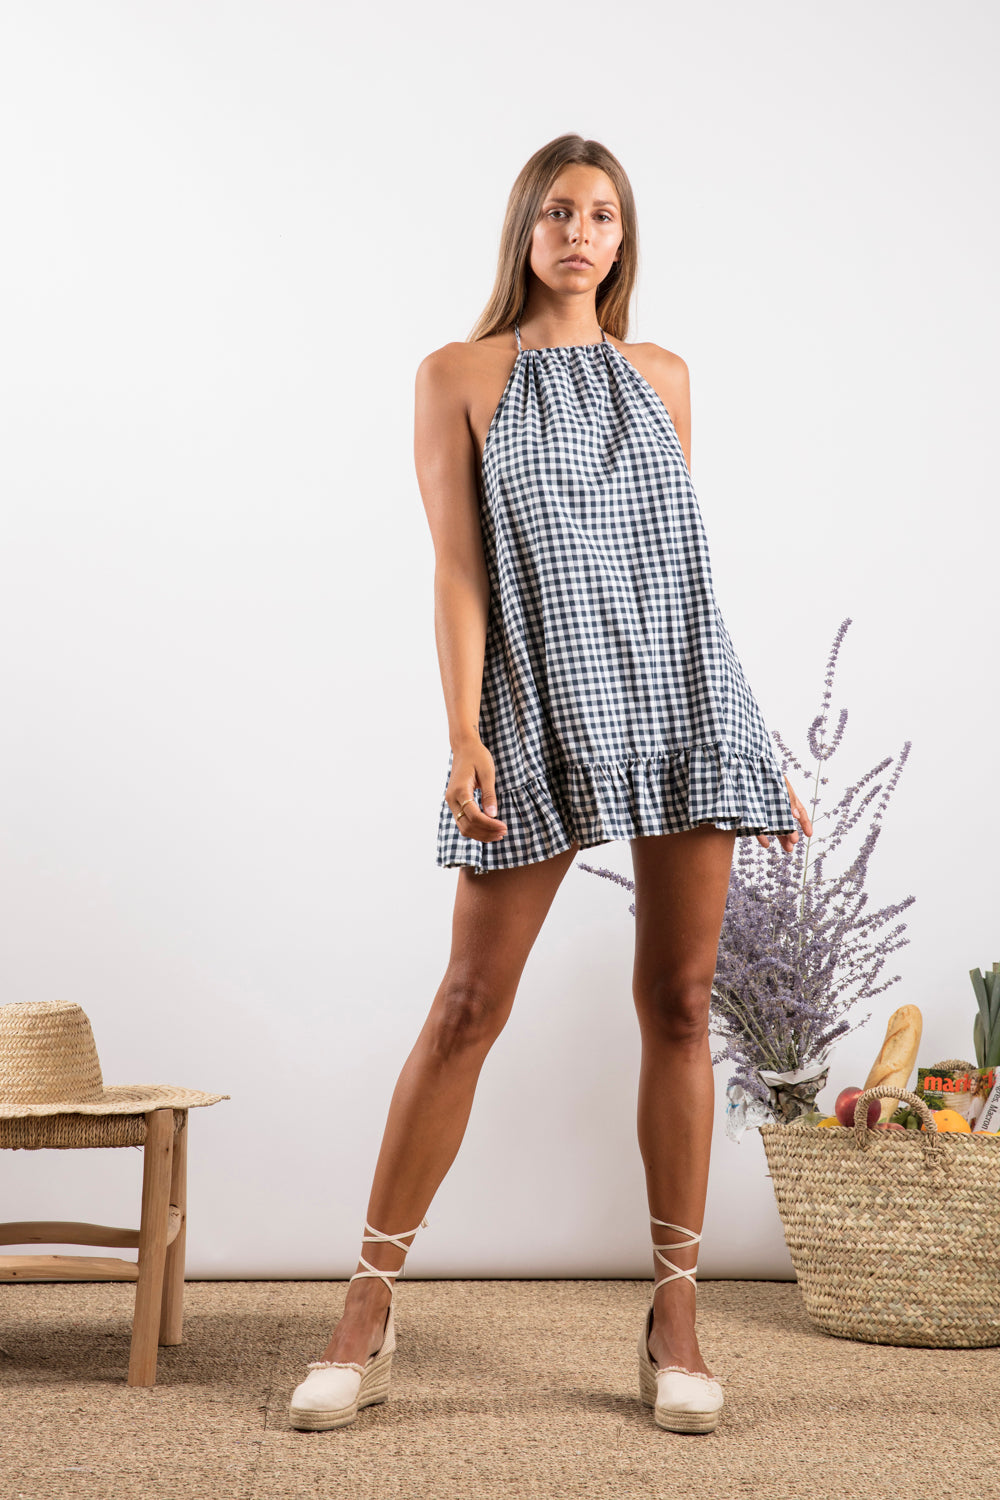 Sundress.fr Lima Gingham Black and Pink Pom-Pon Mini Summer Dress